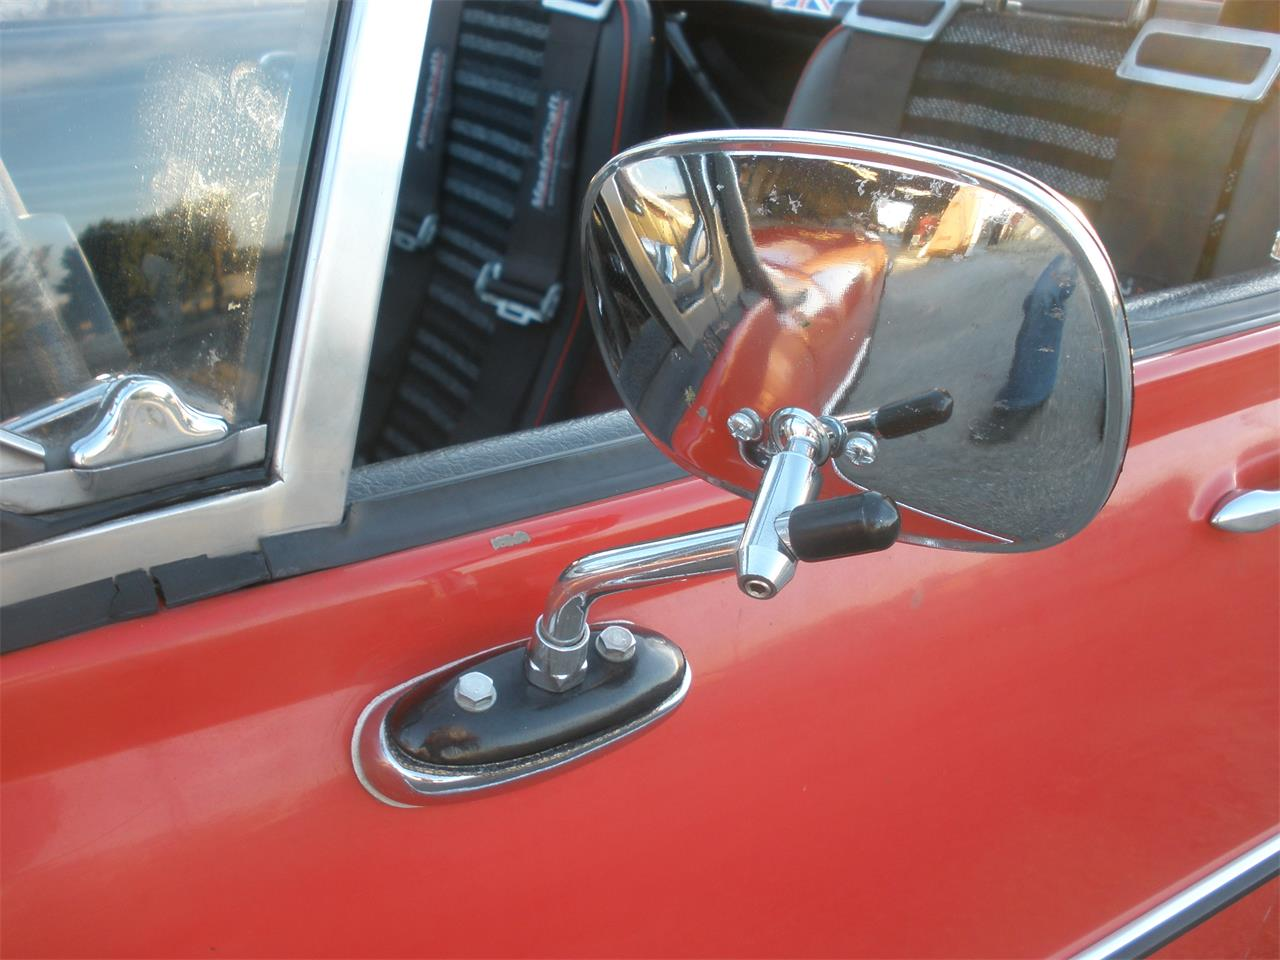 Large Picture of 1974 MG Midget located in California Offered by a Private Seller - KEGM